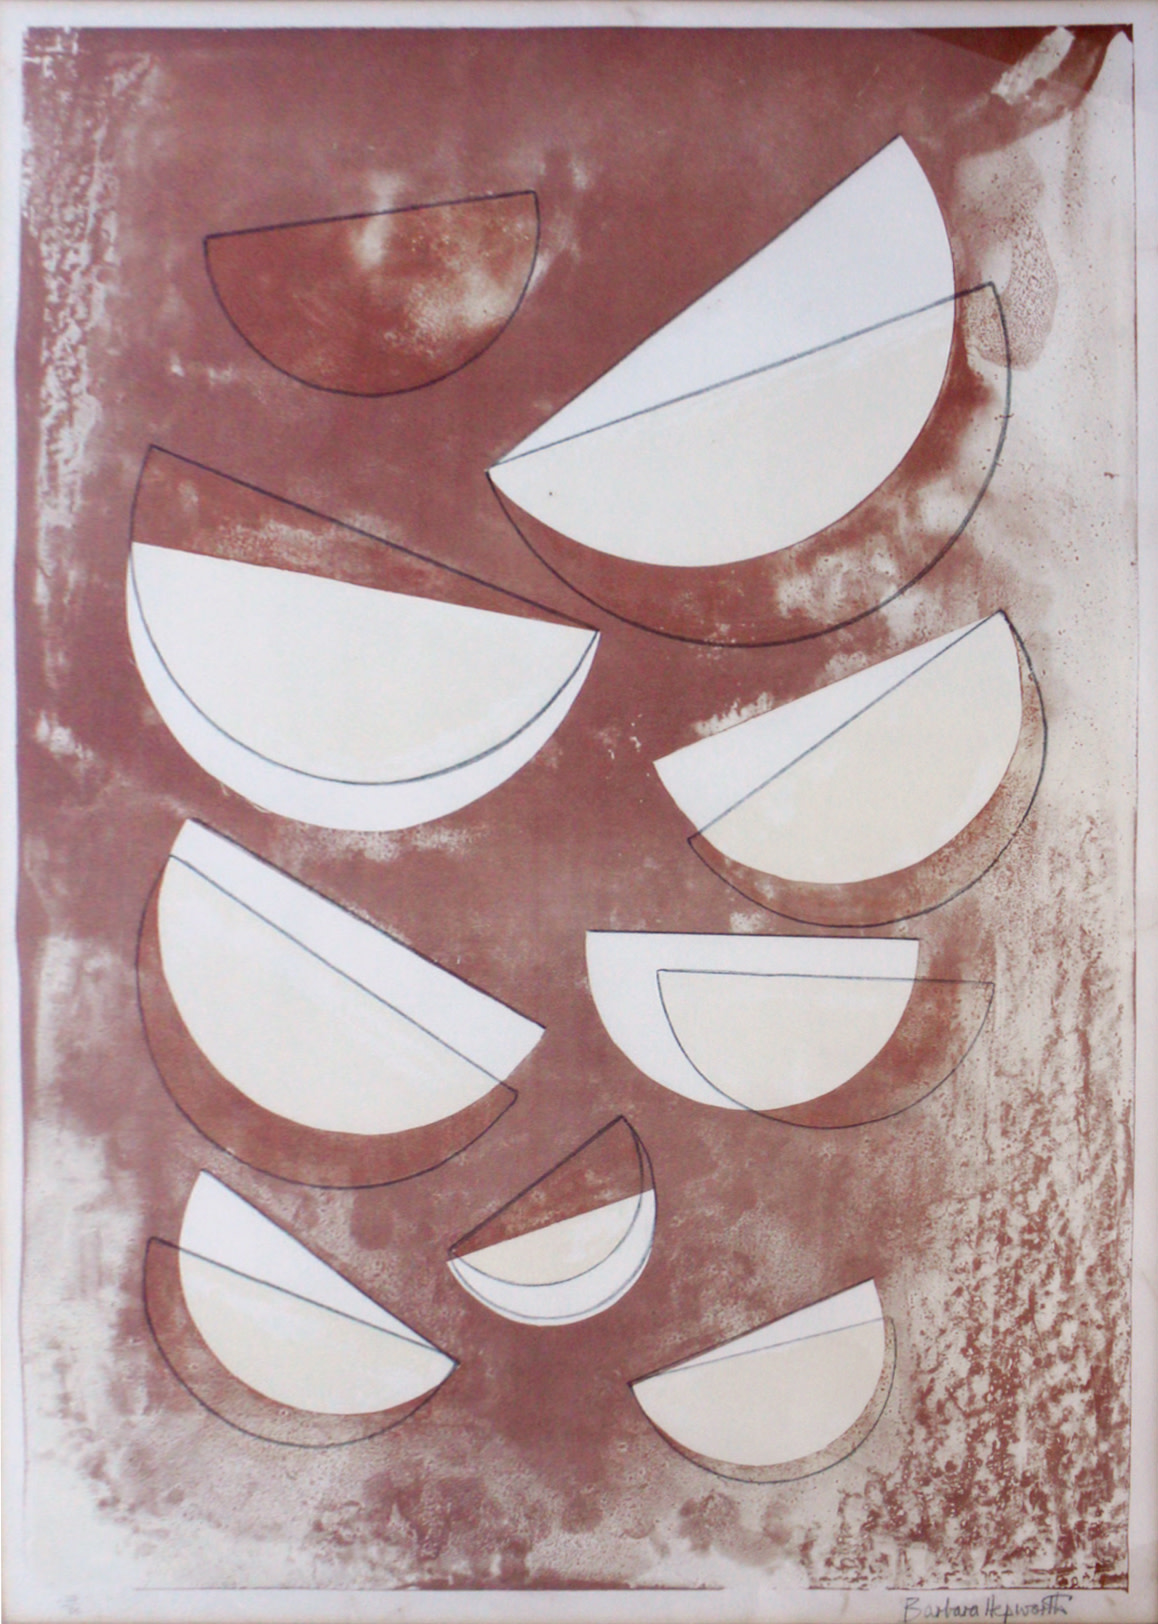 "<span class=""link fancybox-details-link""><a href=""/artists/108-dame-barbara-hepworth-dbe/works/6069-dame-barbara-hepworth-dbe-olympus-from-aegean-suite-1970-1/"">View Detail Page</a></span><div class=""artist""><strong>Dame Barbara Hepworth DBE</strong></div> 1903–1975 <div class=""title""><em>Olympus from Aegean Suite</em>, 1970–1</div> <div class=""signed_and_dated"">signed in pencil, numbered 'x23/30' (presumably <br /> an artist's or printer's proof aside from the general edition of 60)</div> <div class=""medium"">lithograph in colours on wove paper</div> <div class=""dimensions"">image size: 76 x 54 cm</div> <div class=""edition_details"">editioned 'x23/30'</div><div class=""copyright_line"">© The Estate of Barbara Hepworth</div>"